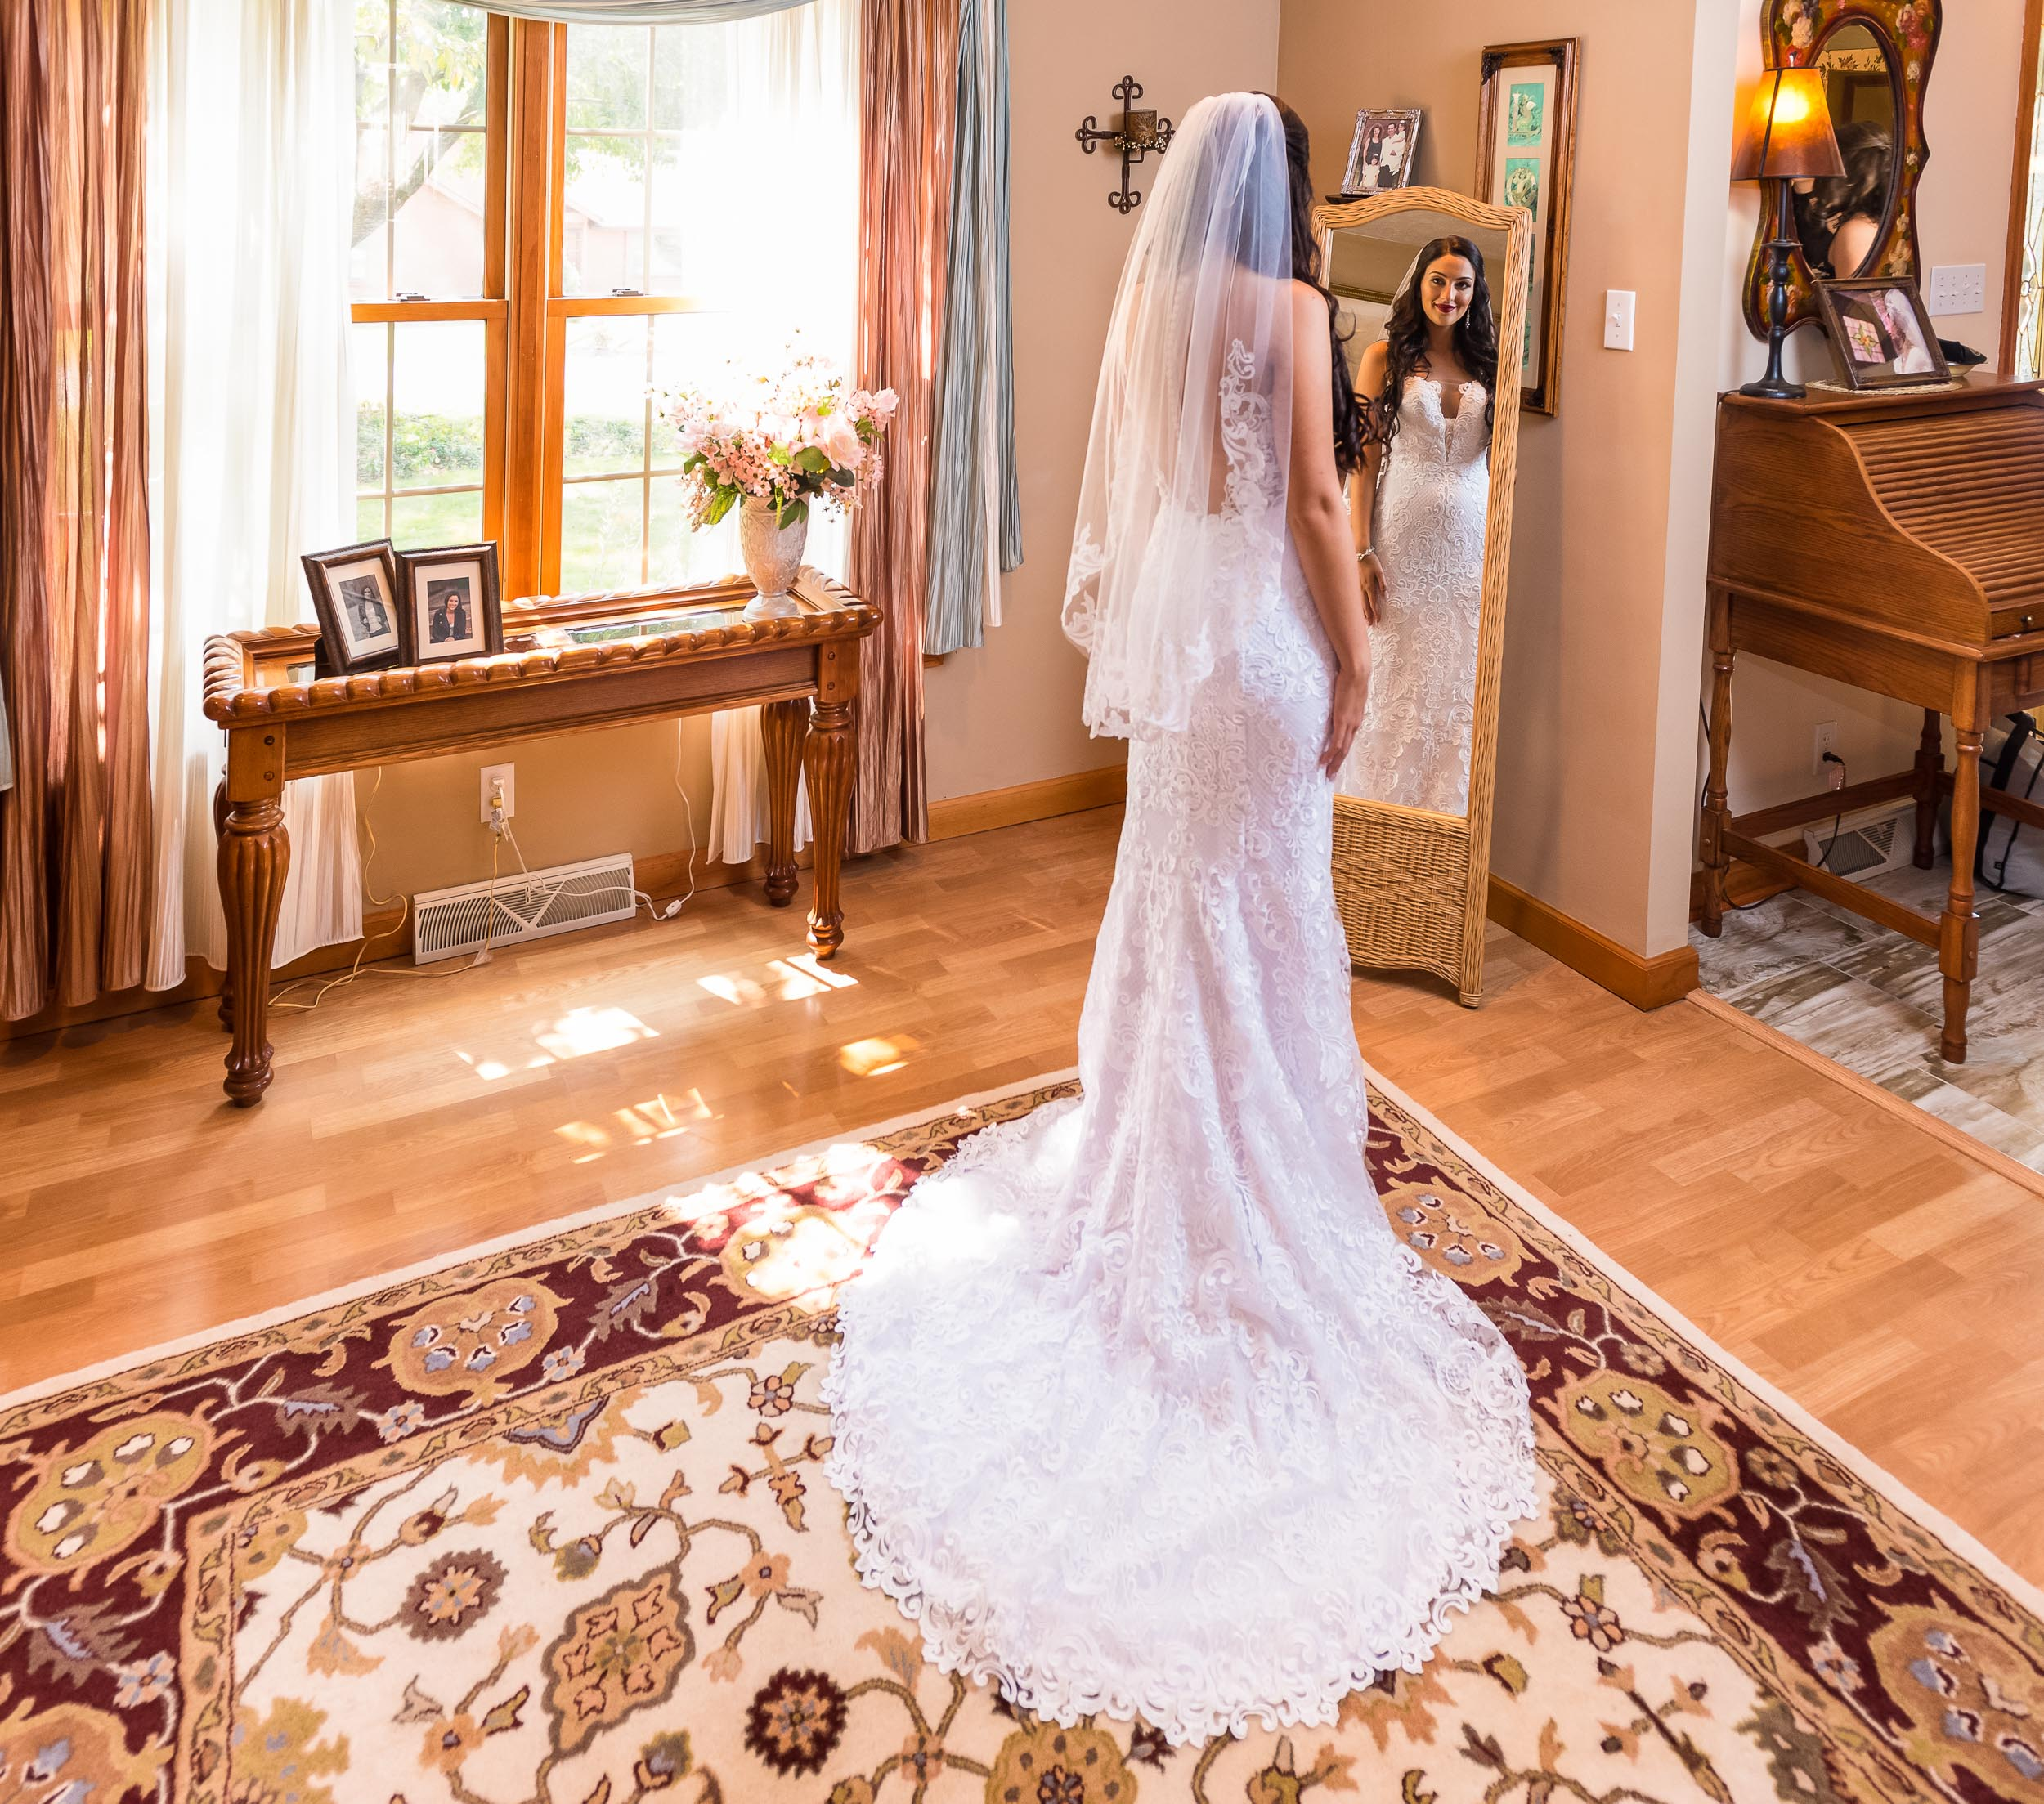 Bride-Getting-Ready-at-home-Glenshaw-4.jpg